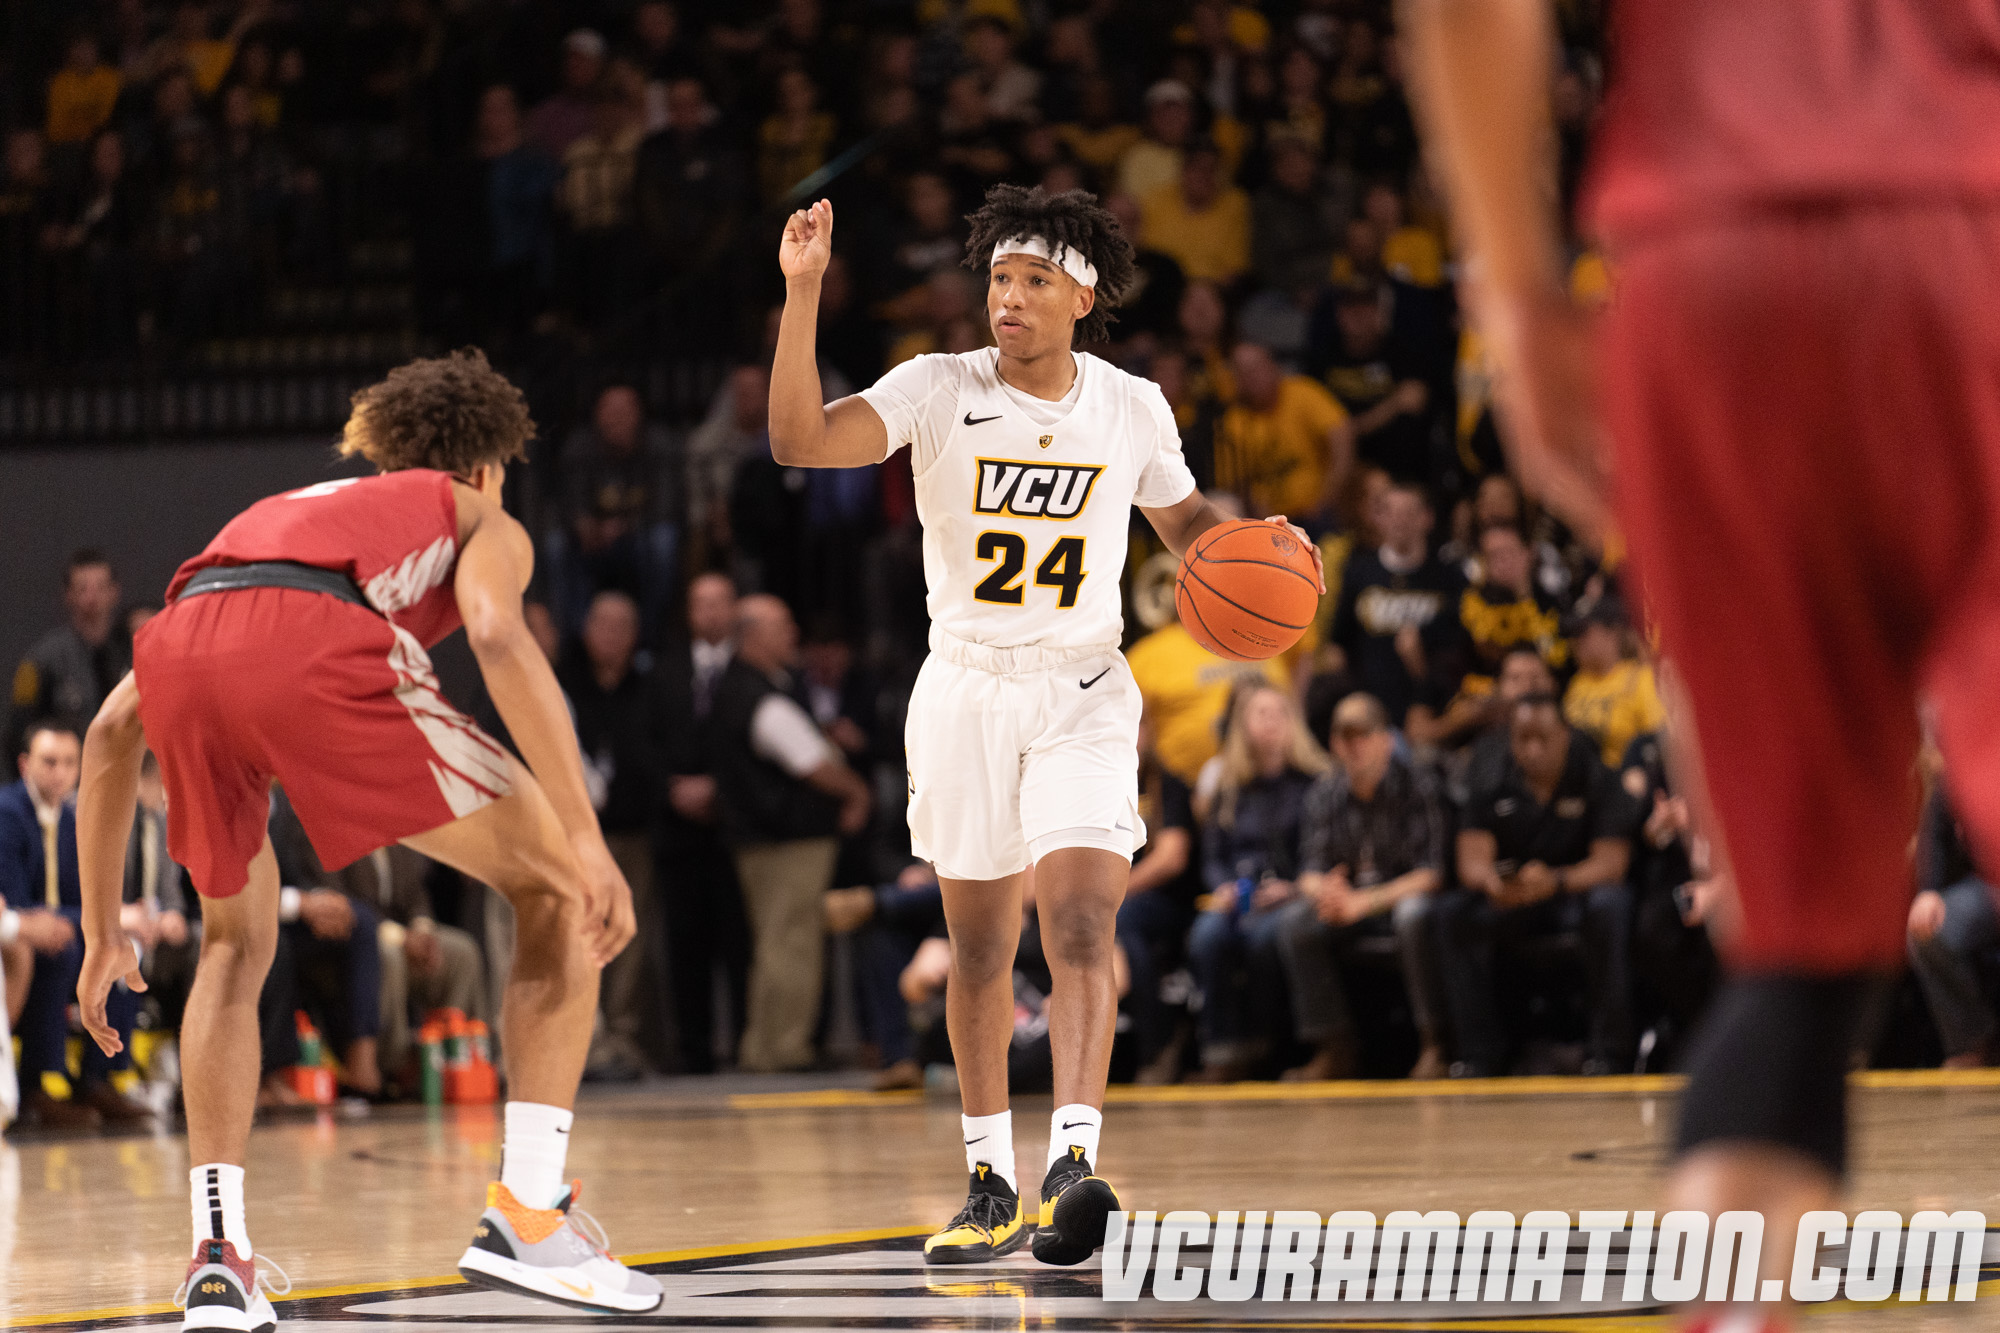 P.J. Byrd announces his departure from VCU